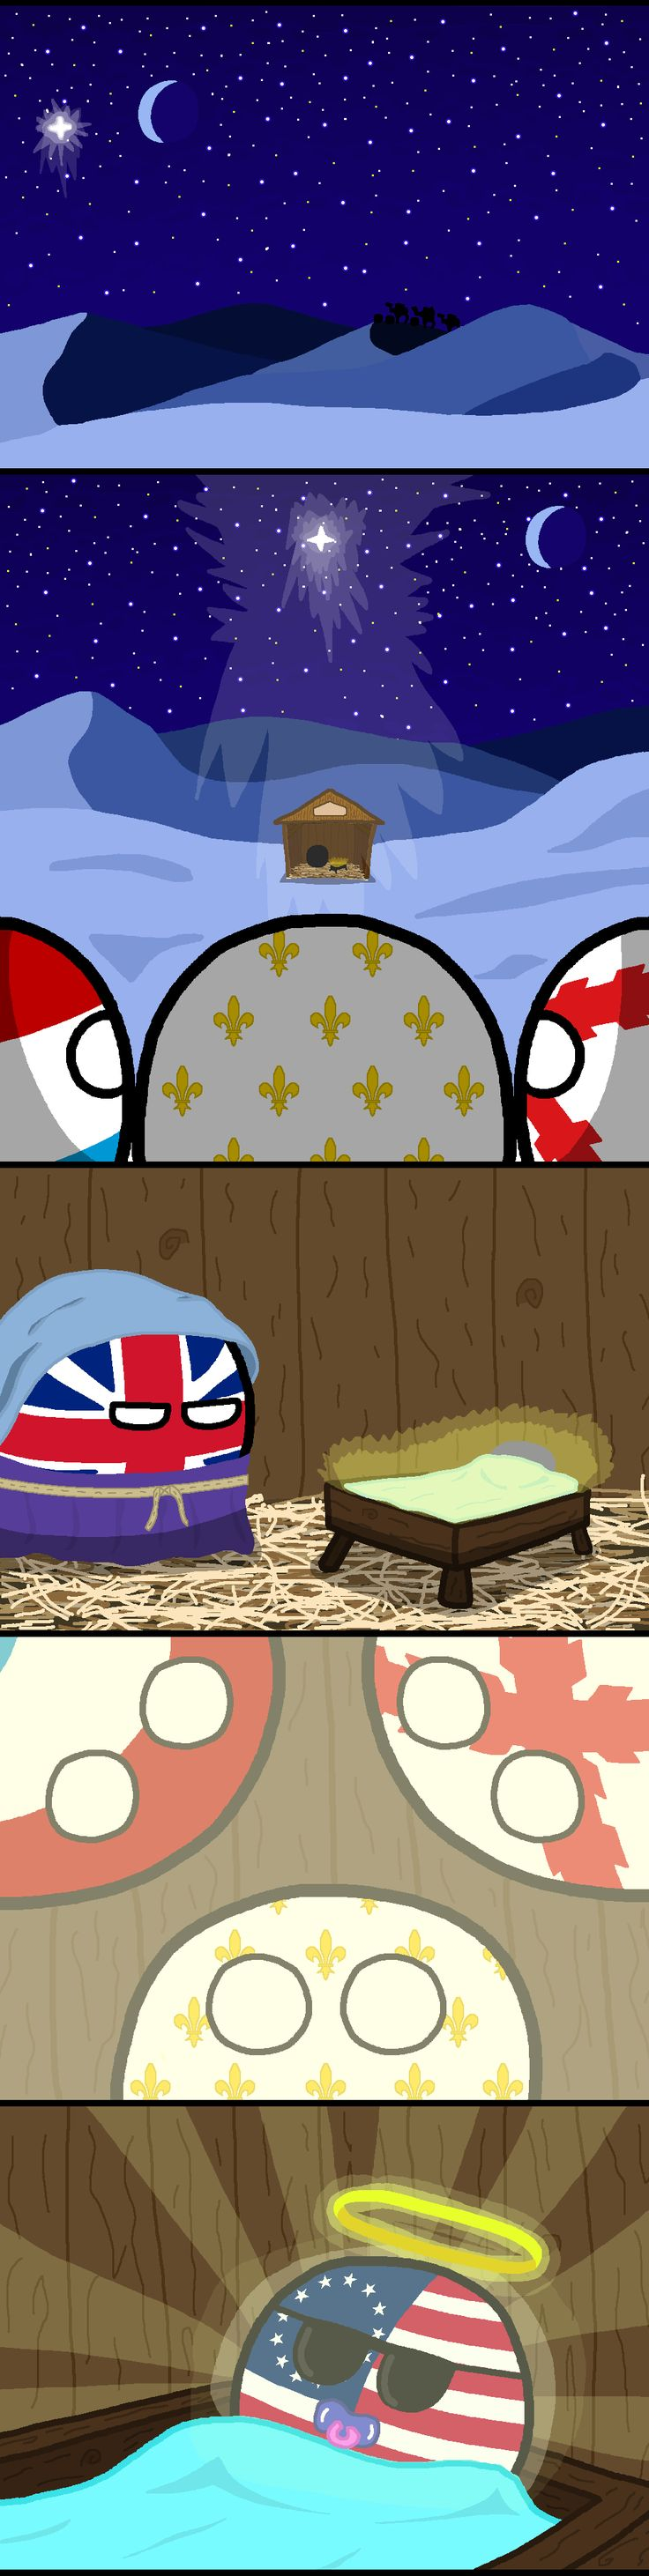 The Birth of a Nation ( USA, UK, Netherlands, Spain, France ) by Baron koleye of kolaje #polandball #countryball